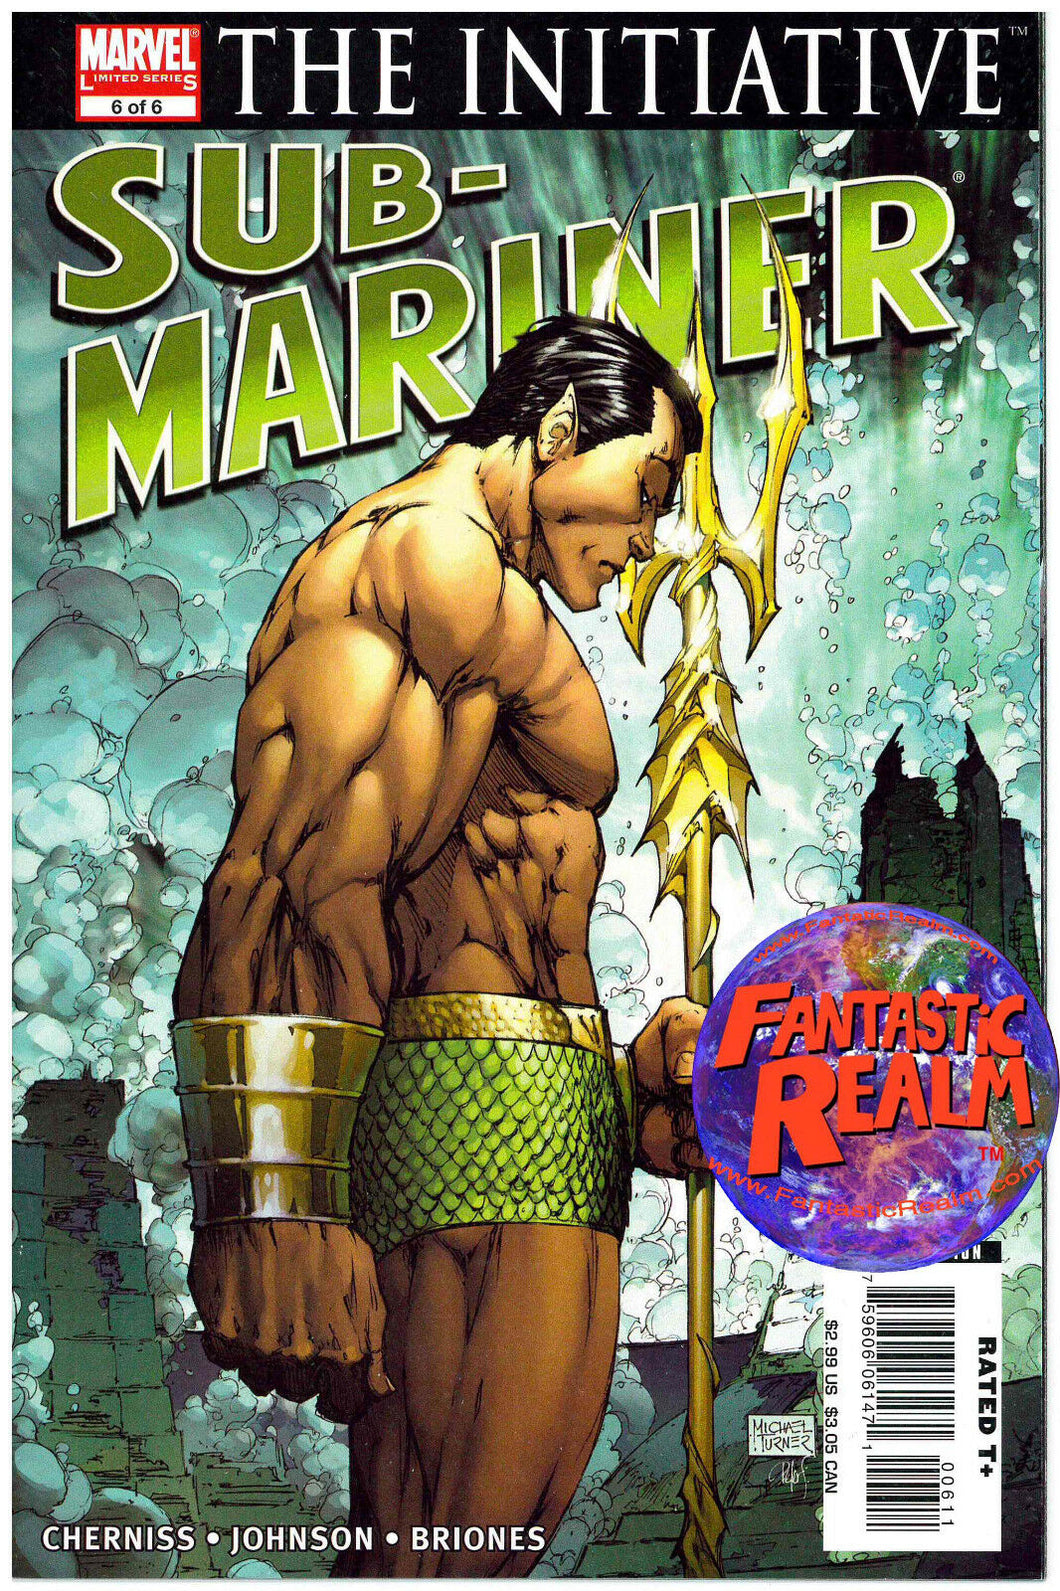 SUB-MARINER: THE INITIATIVE 6 OF 6 TURNER COVER MARVEL COMICS